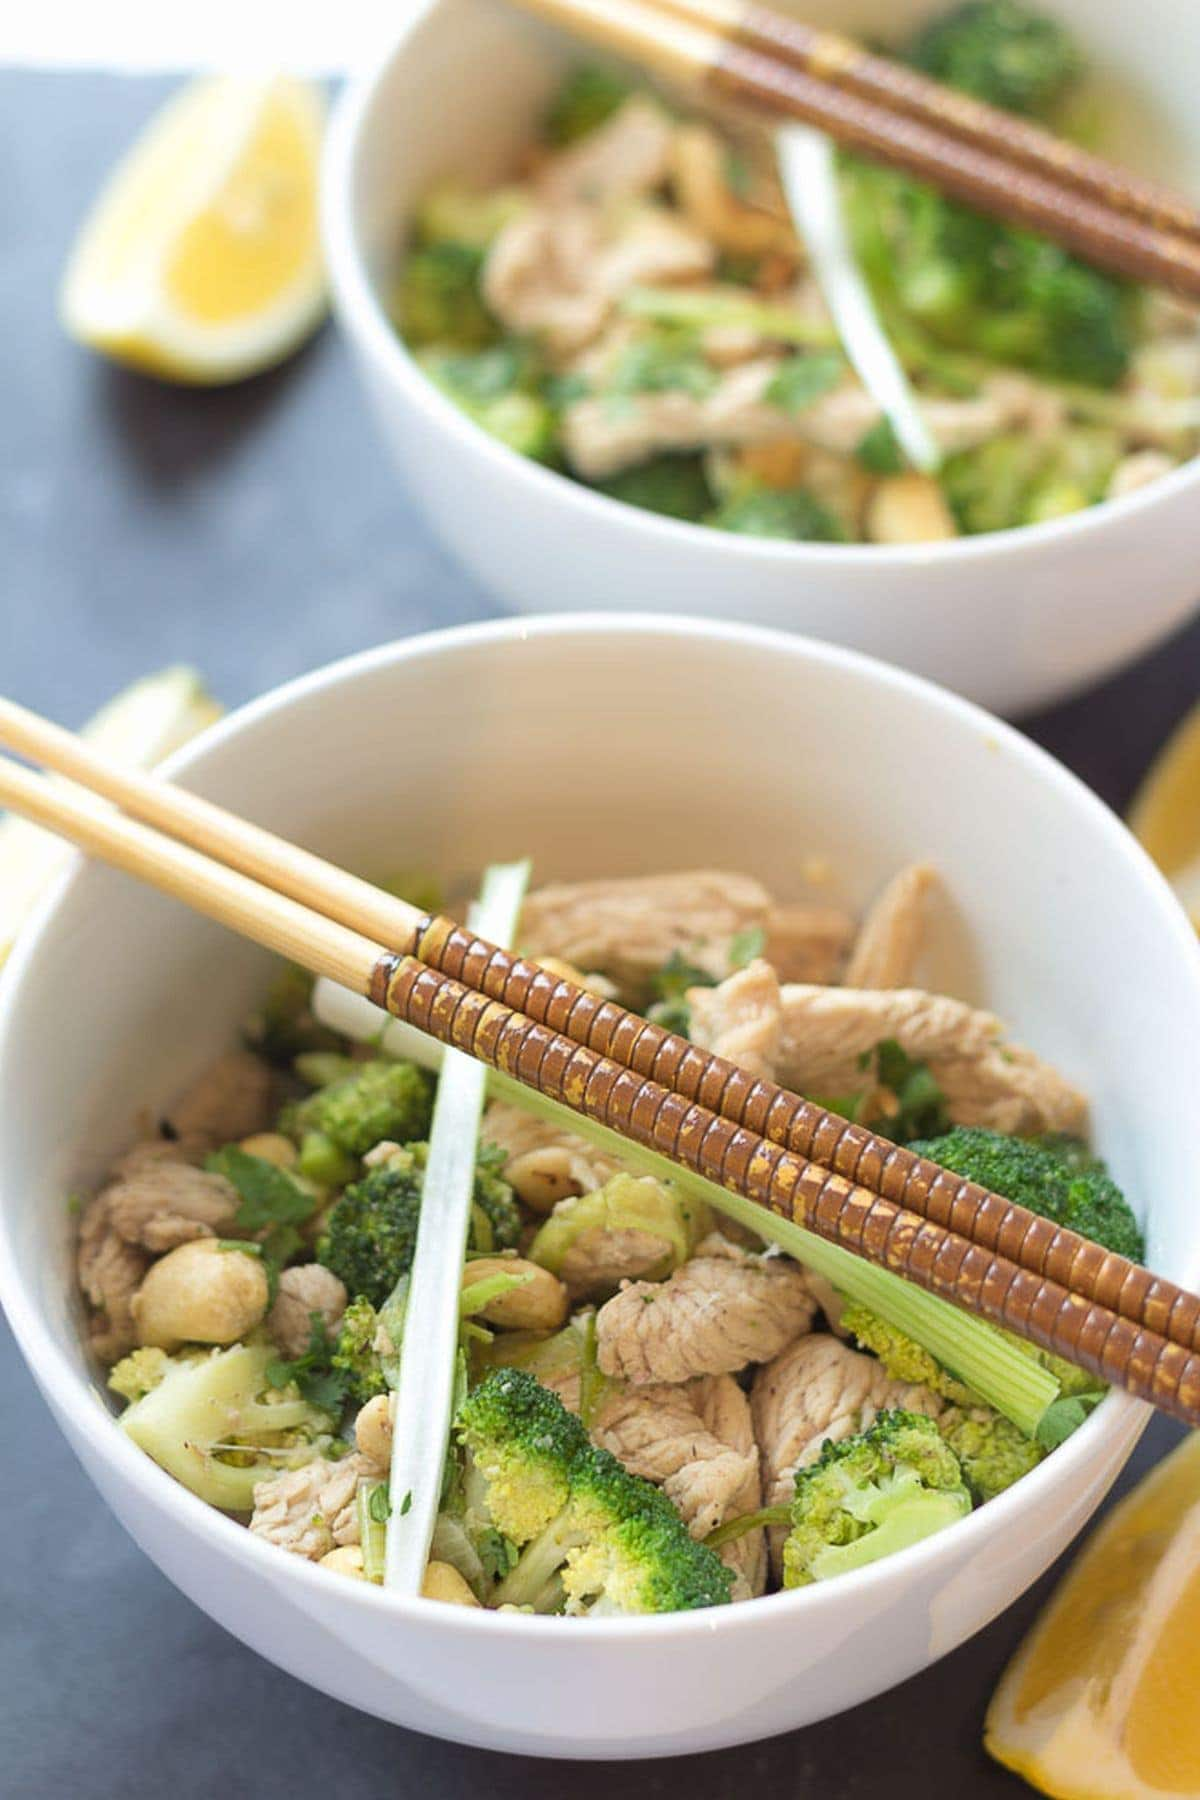 Two bowls of turkey and broccoli stir fry one in front of the other with chopsticks on. Lemon wedges to the side of the bowls.